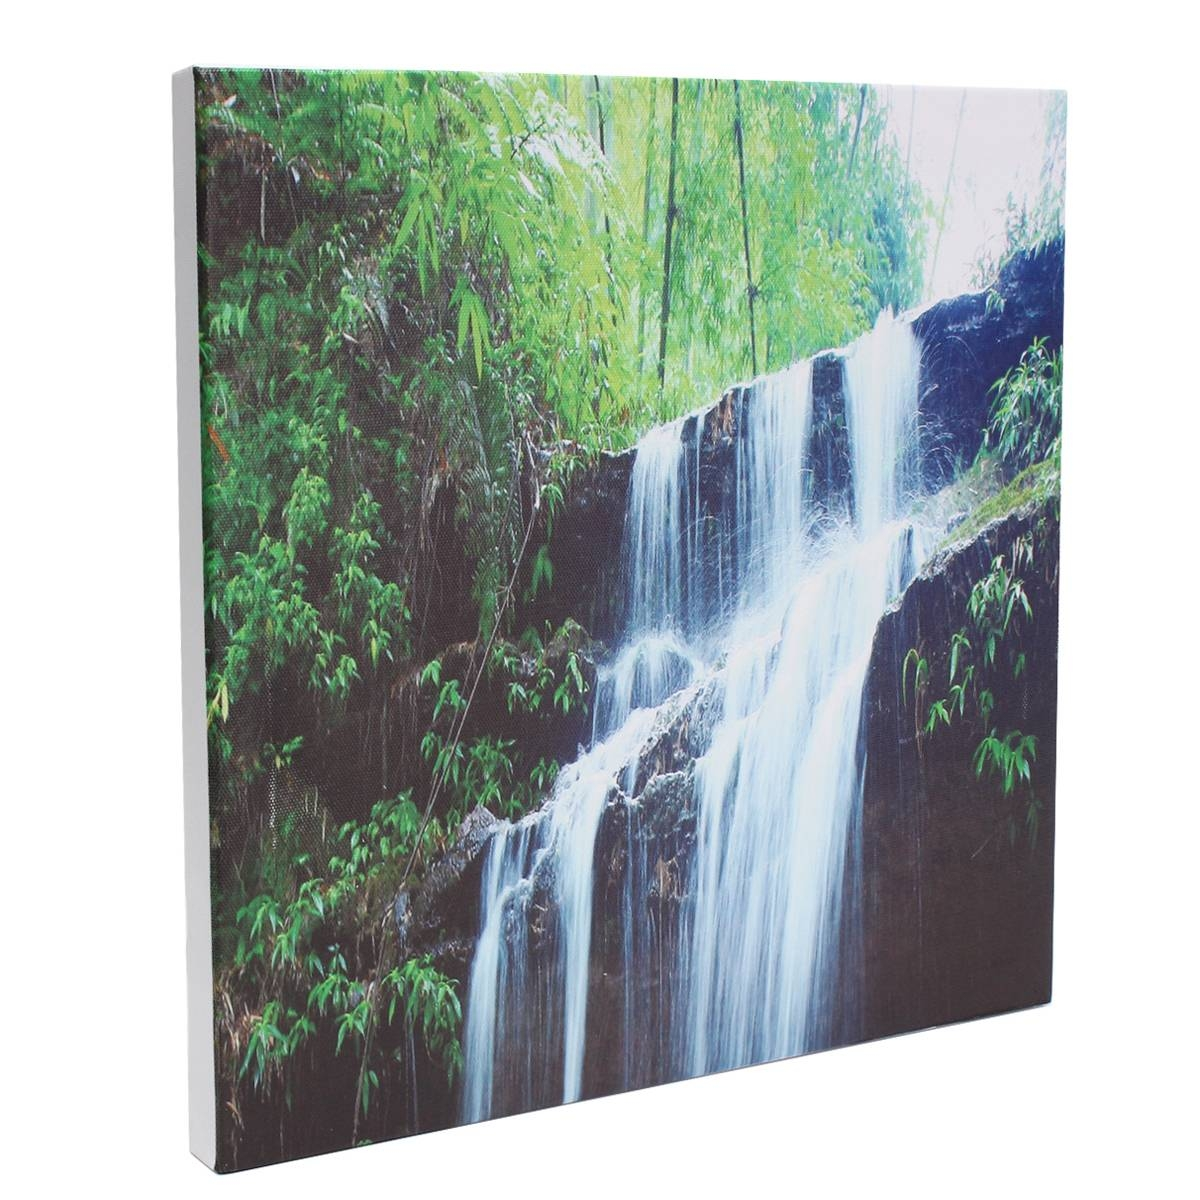 3 Cascade Large Waterfall Framed Print Painting Canvas Wall Art Regarding Most Current Waterfall Wall Art (Gallery 2 of 20)